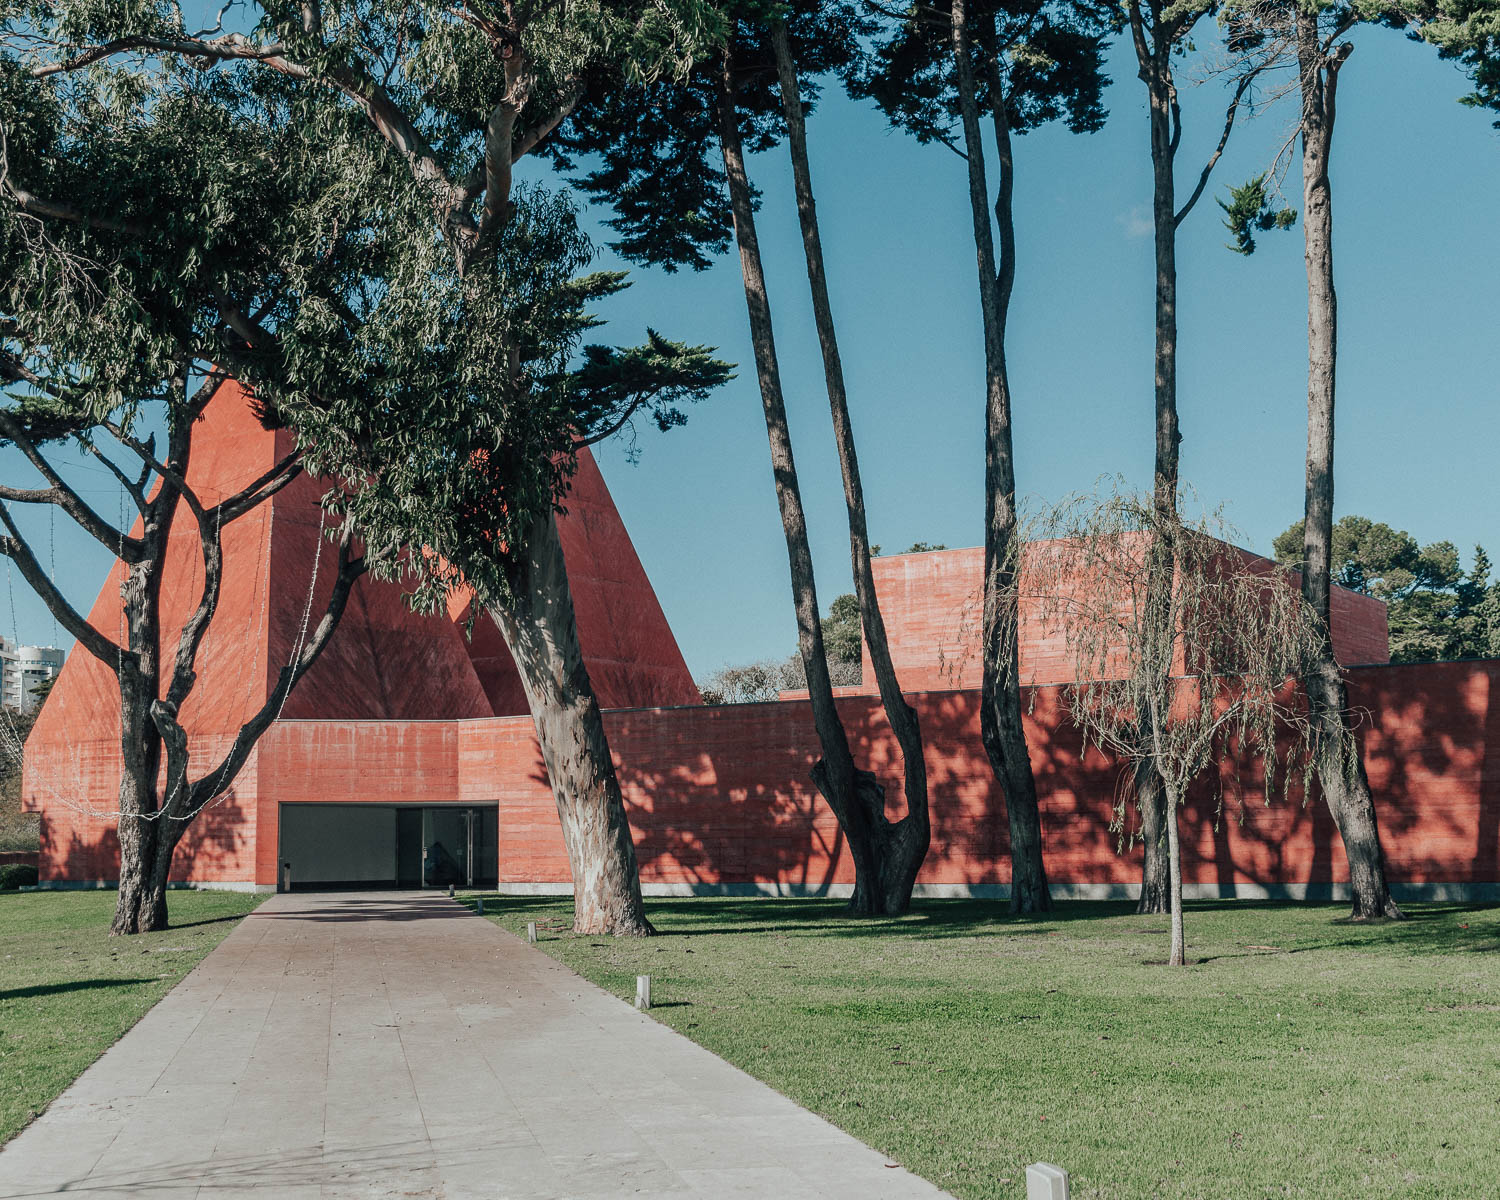 Paula Rego Museum 'House of Stories', Casa das Historias, Cascais, Portugal